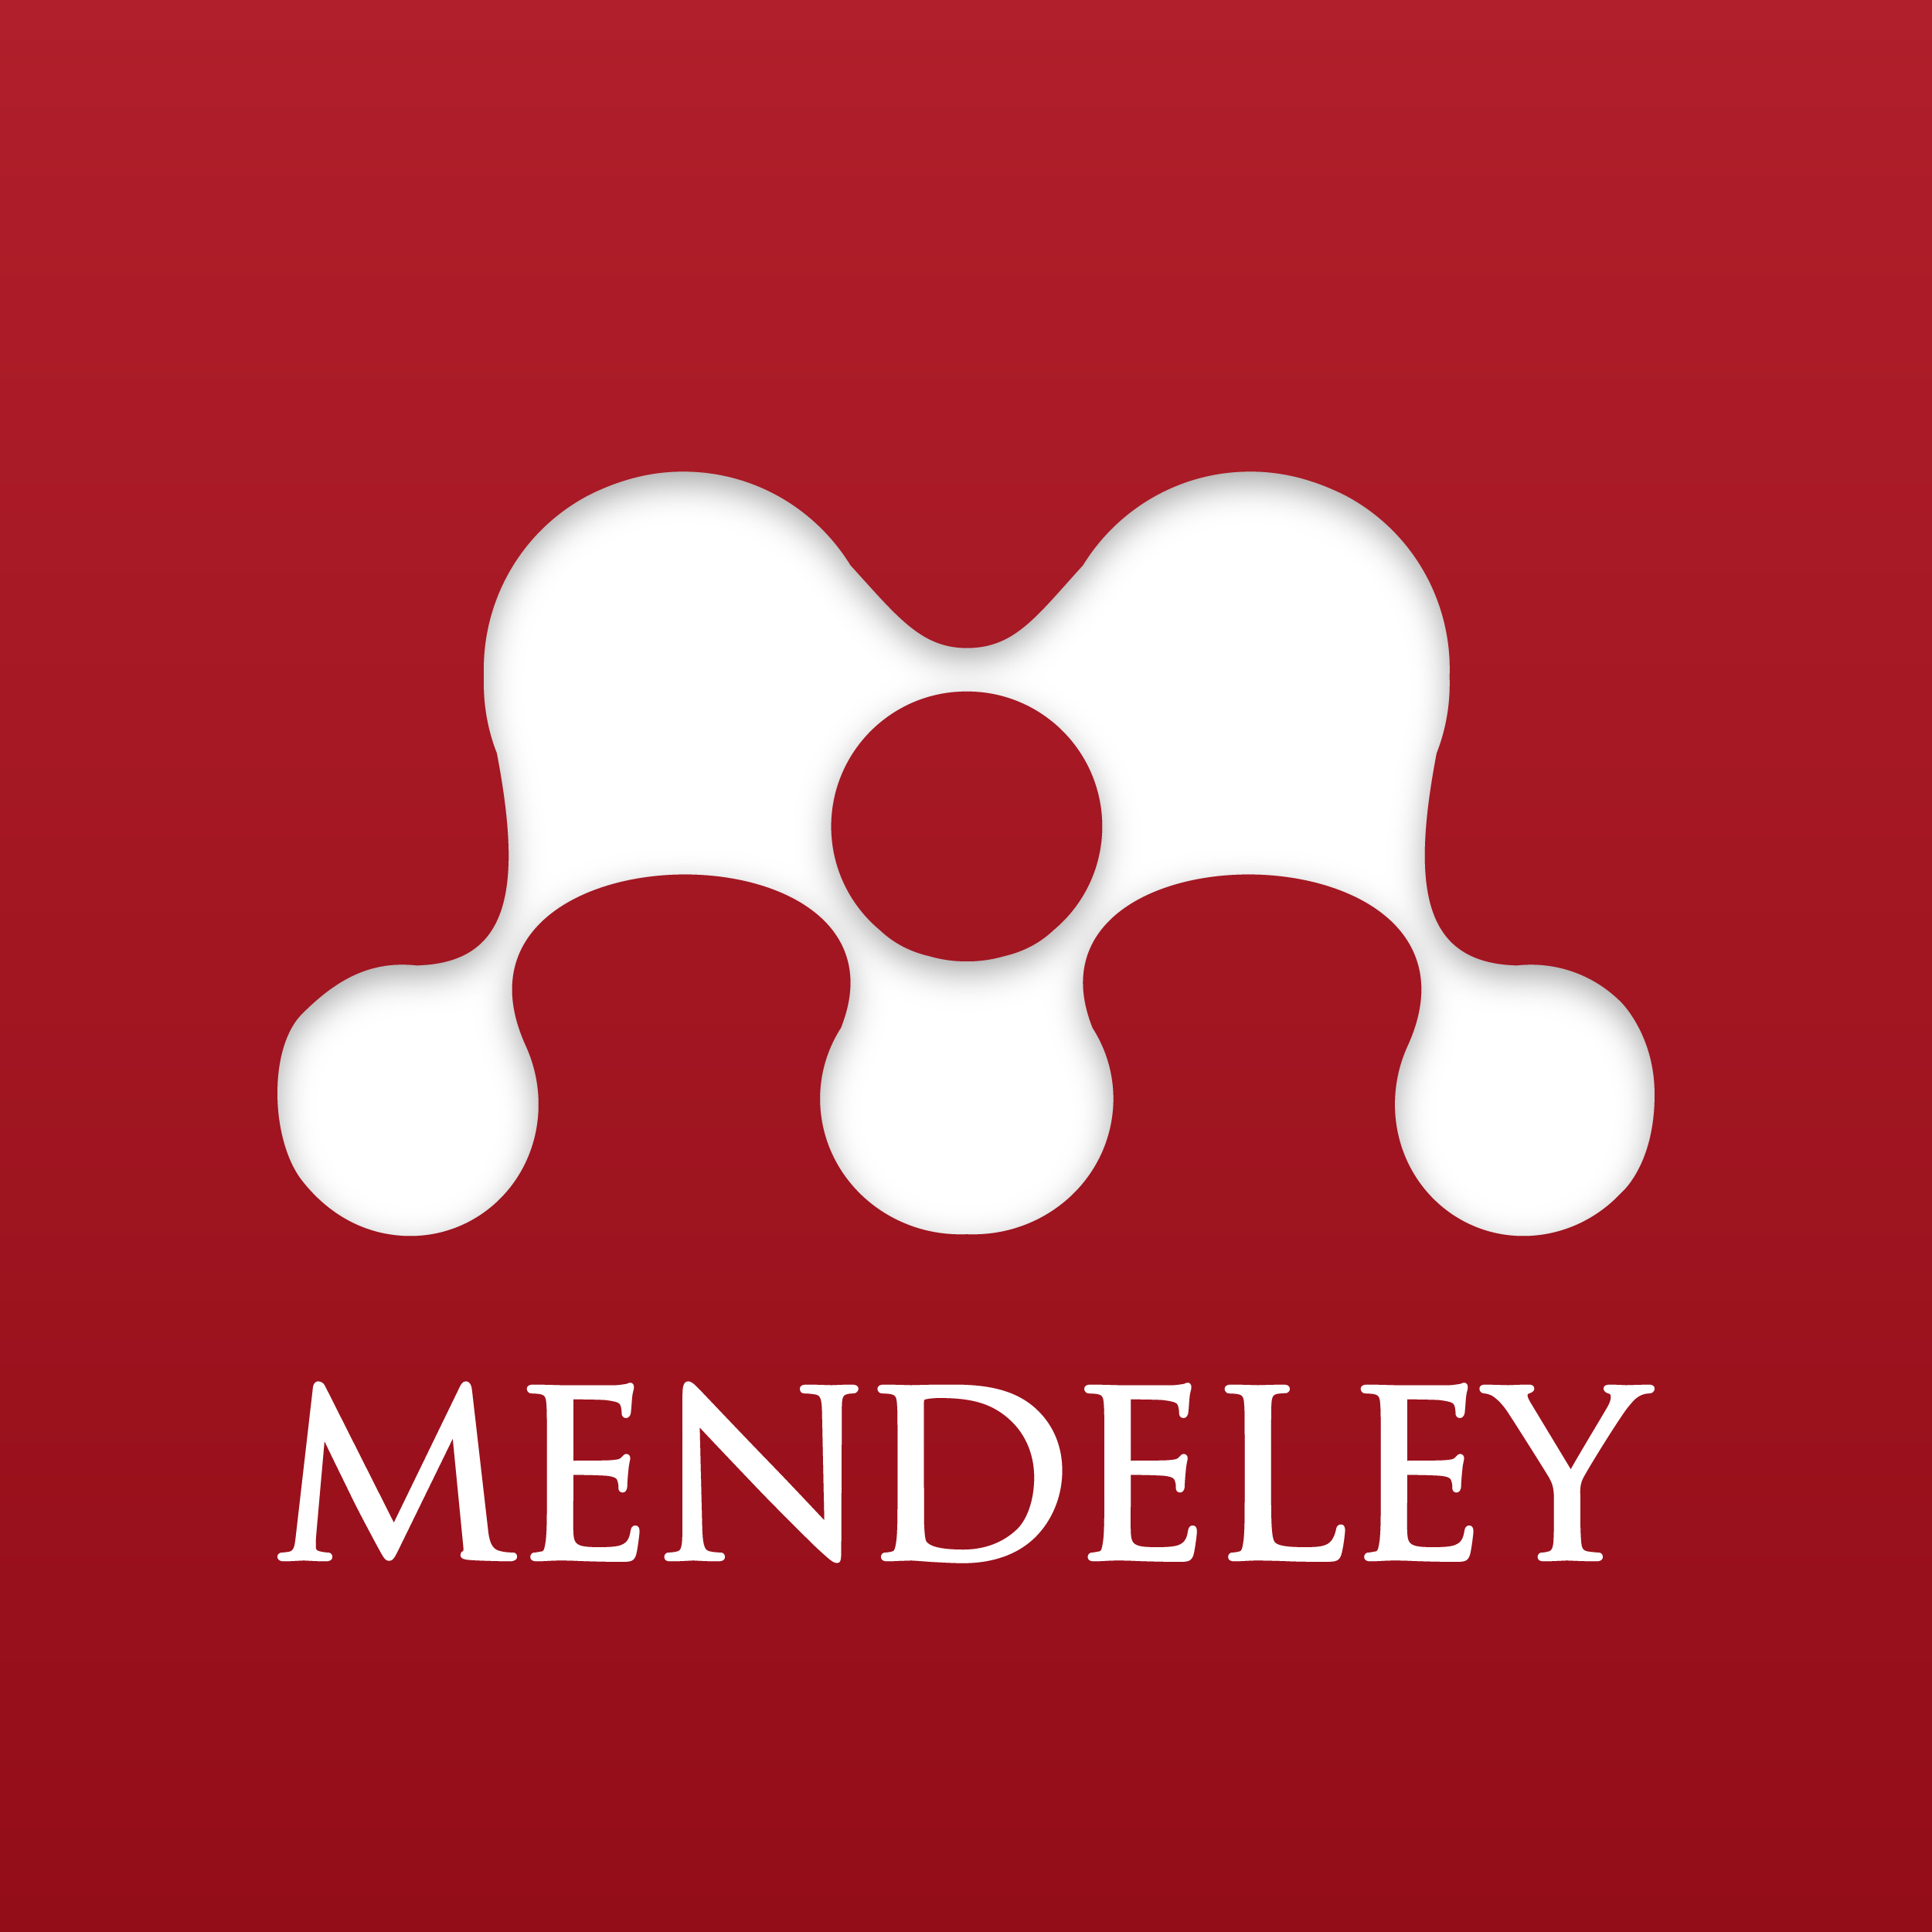 Image result for mendeley logo png